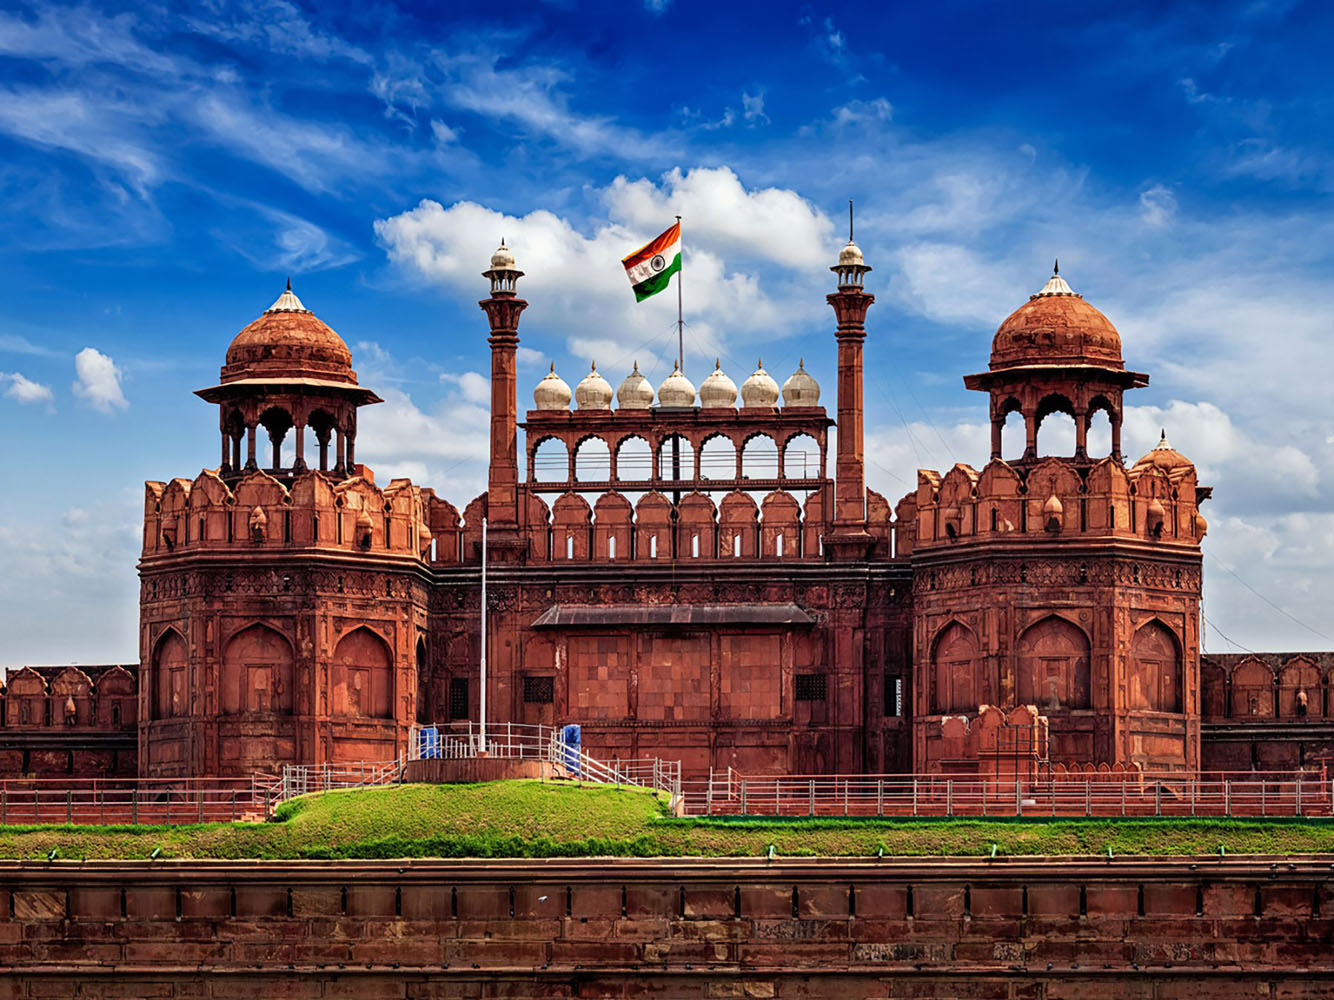 The Red Fort (Lal Qila) in Delhi with the flag of India flying from the roof